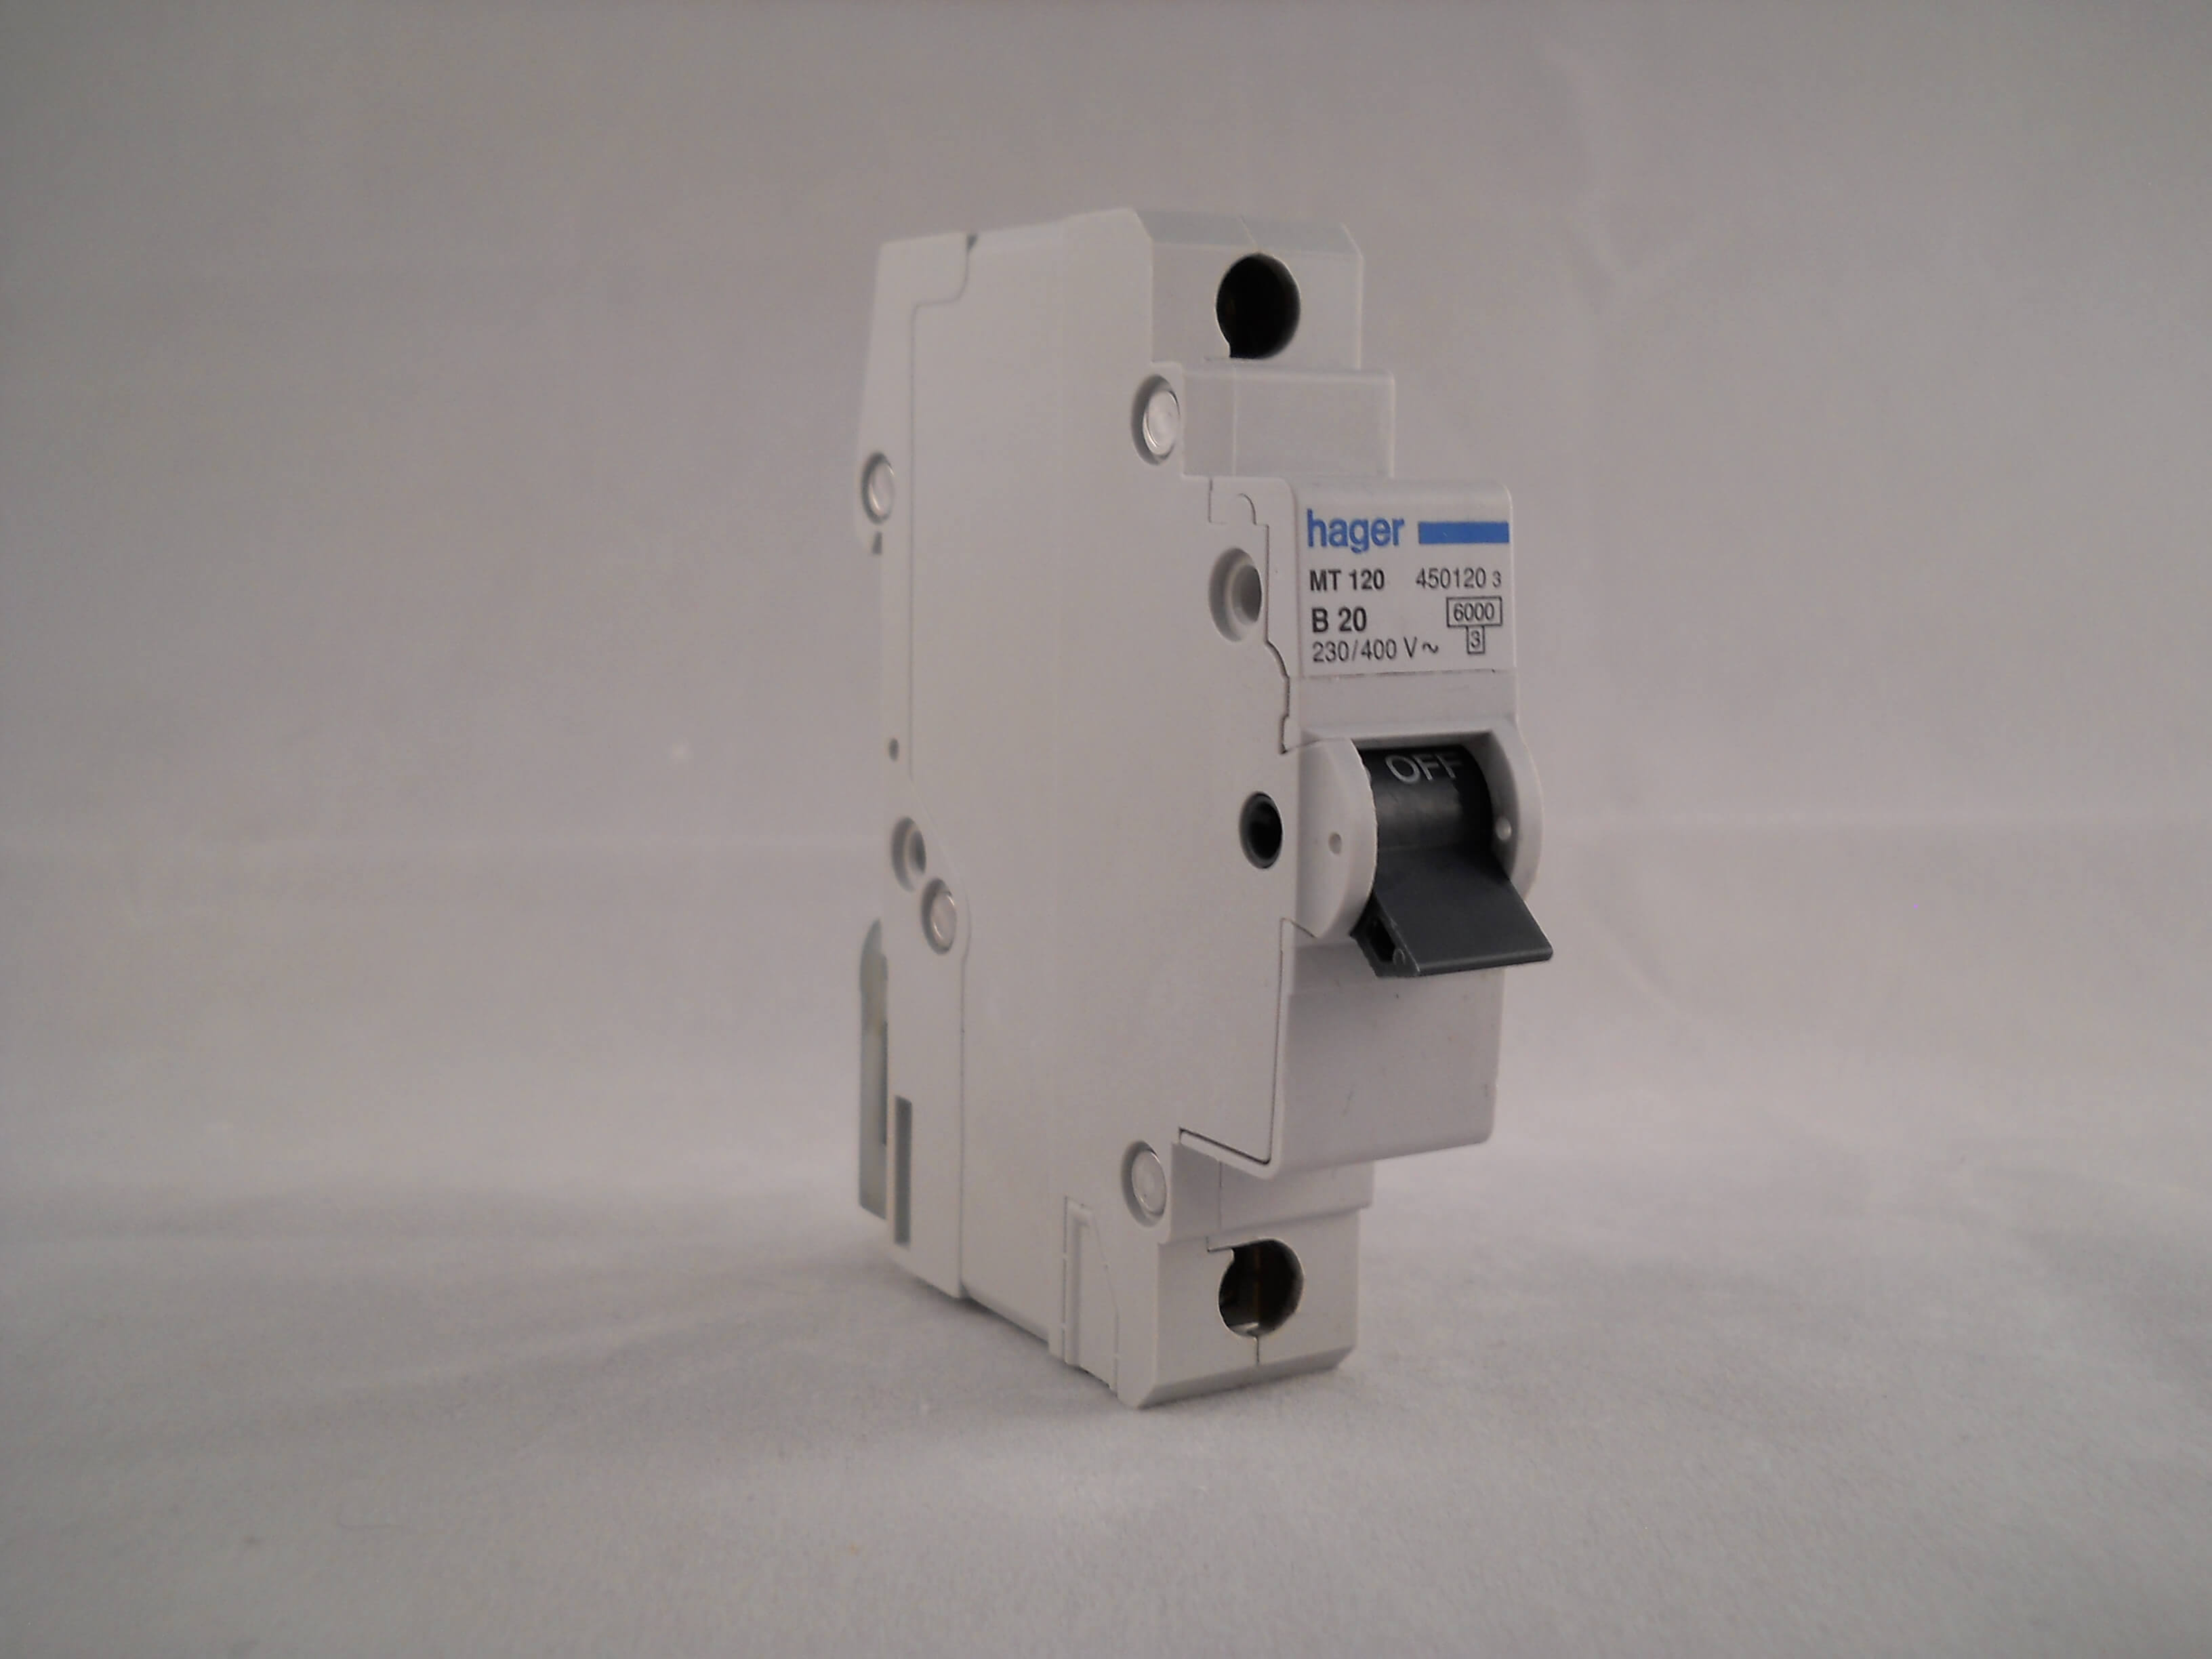 Hager MT120 B20 450120 3 Type B Single Pole MCB Circuit Breaker 230//400V